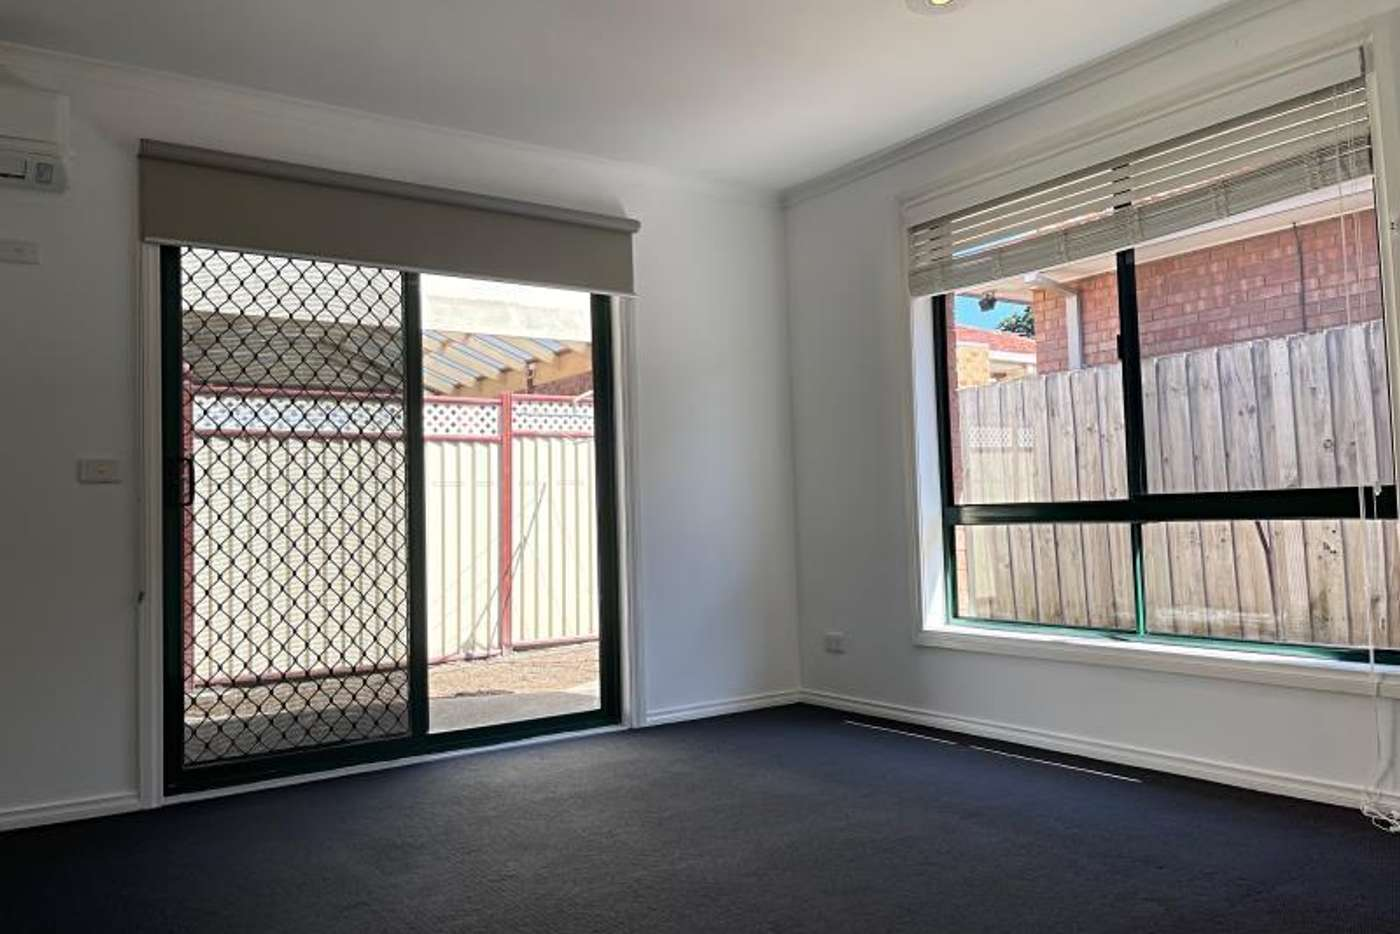 Sixth view of Homely house listing, 379 Dalton Road, Epping VIC 3076